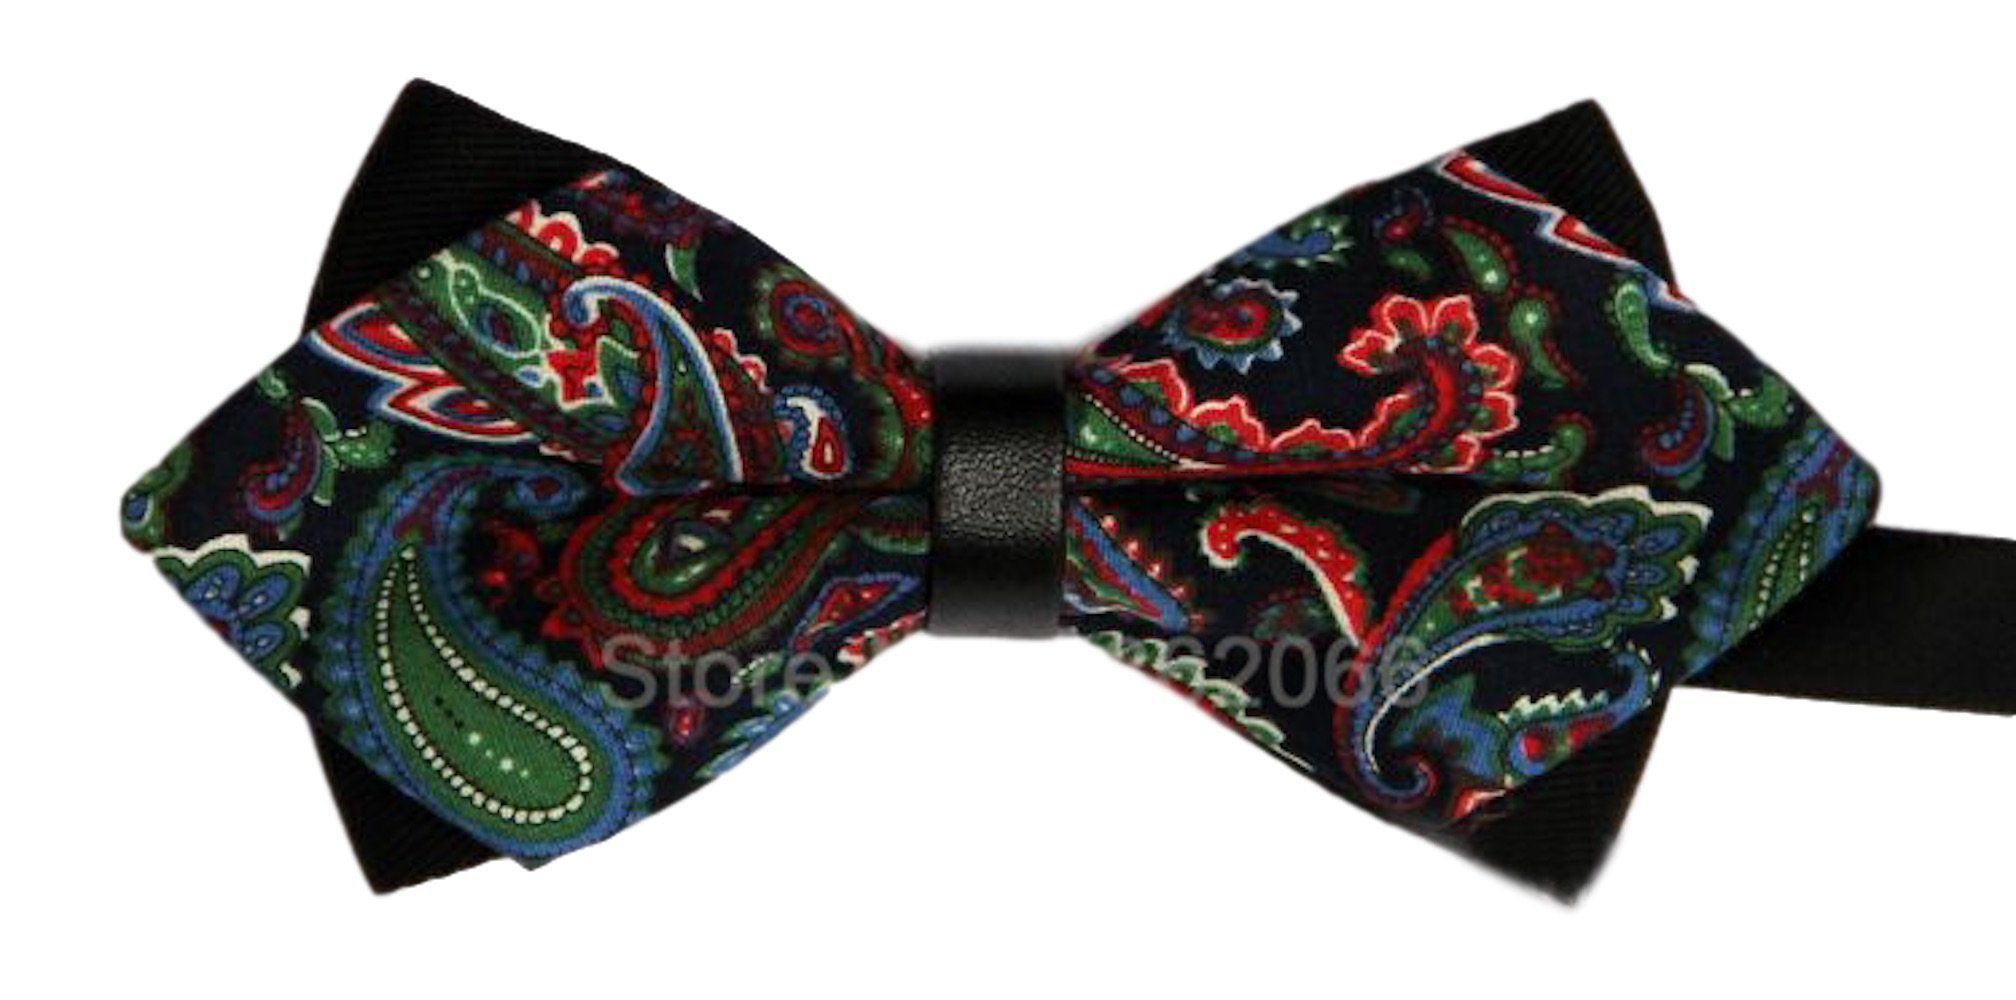 Gazebo Green Pre-Tied Cotton Paisley Floral Wedding Dressy Bow Tie (Green, Blue & Red Paisley)